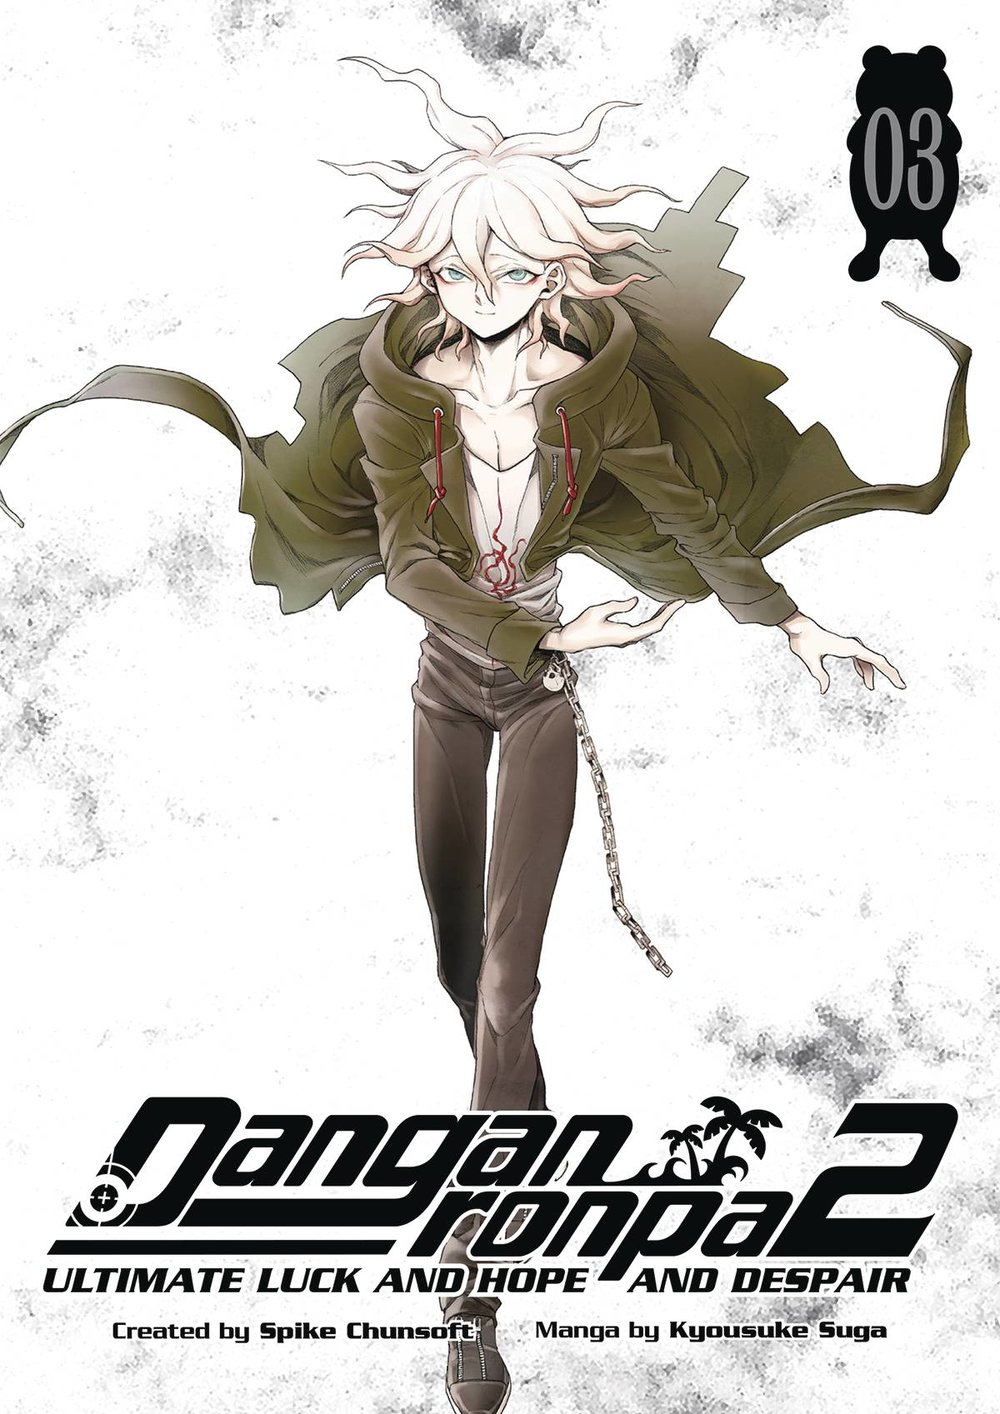 DANGANRONPA 2 TP 3 ULTIMATE LUCK HOPE DESPAIR.jpg